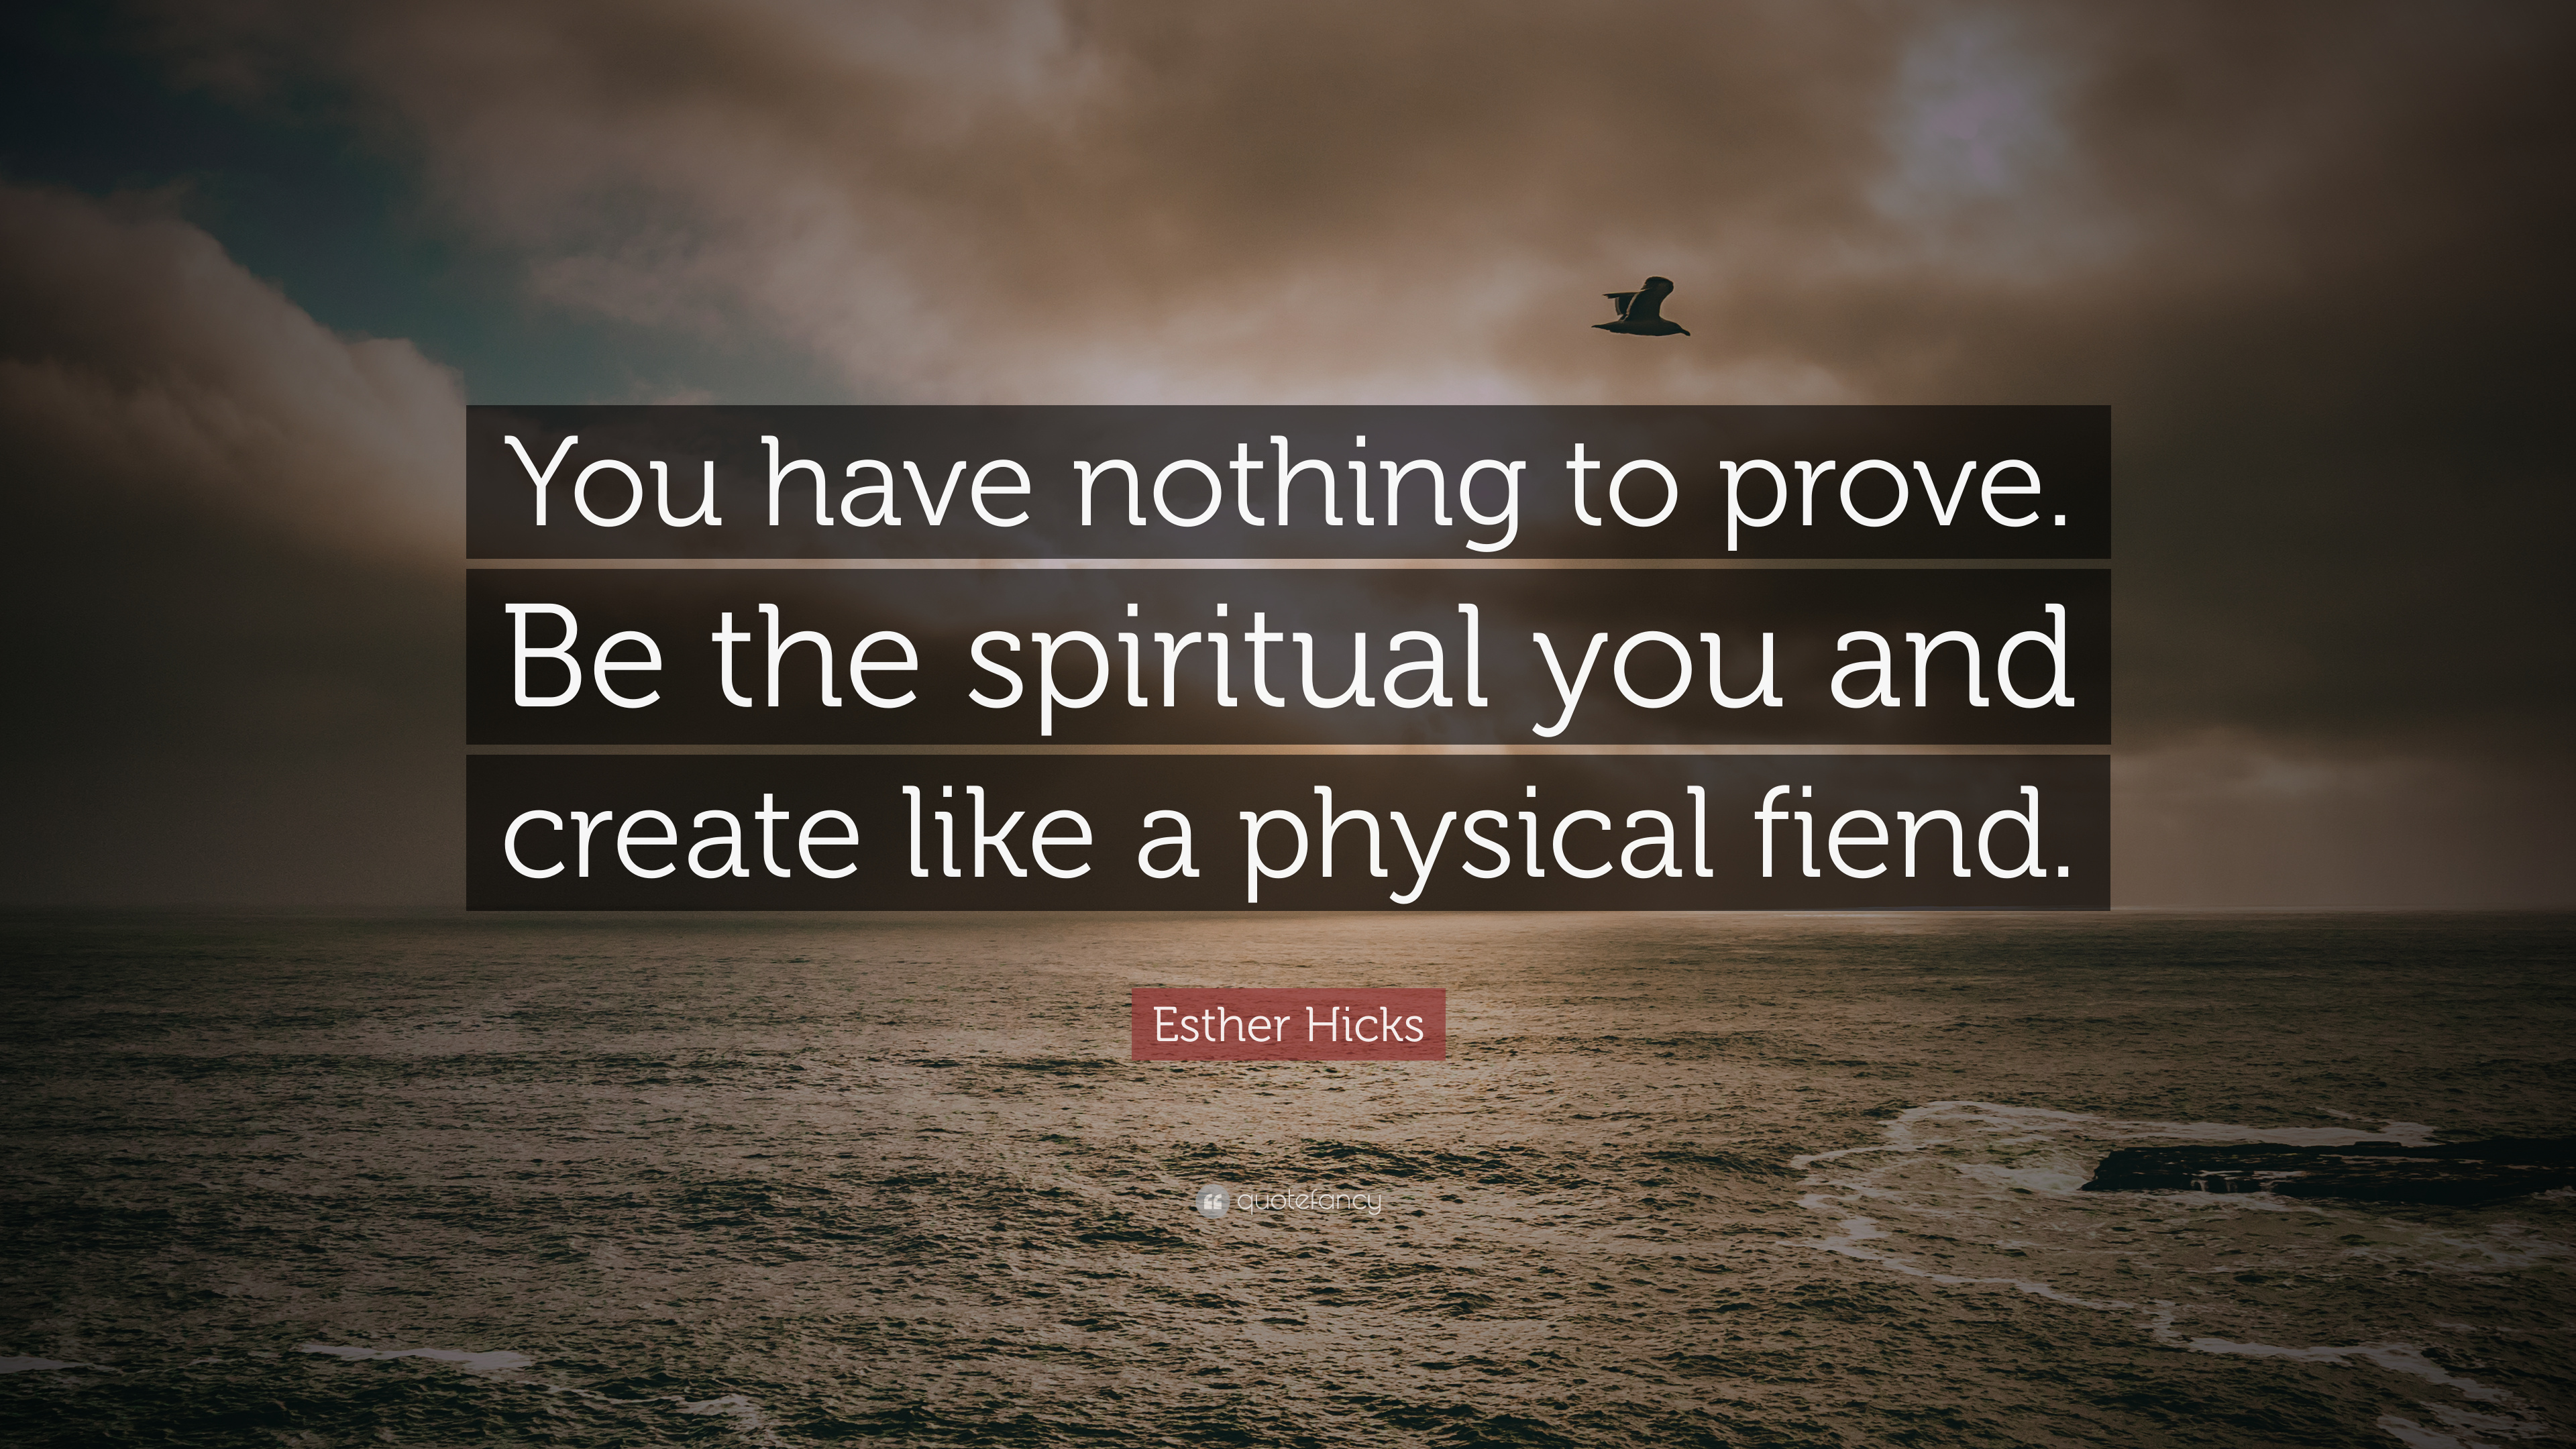 Nothing To Prove Quotes: Esther Hicks Quotes (100 Wallpapers)